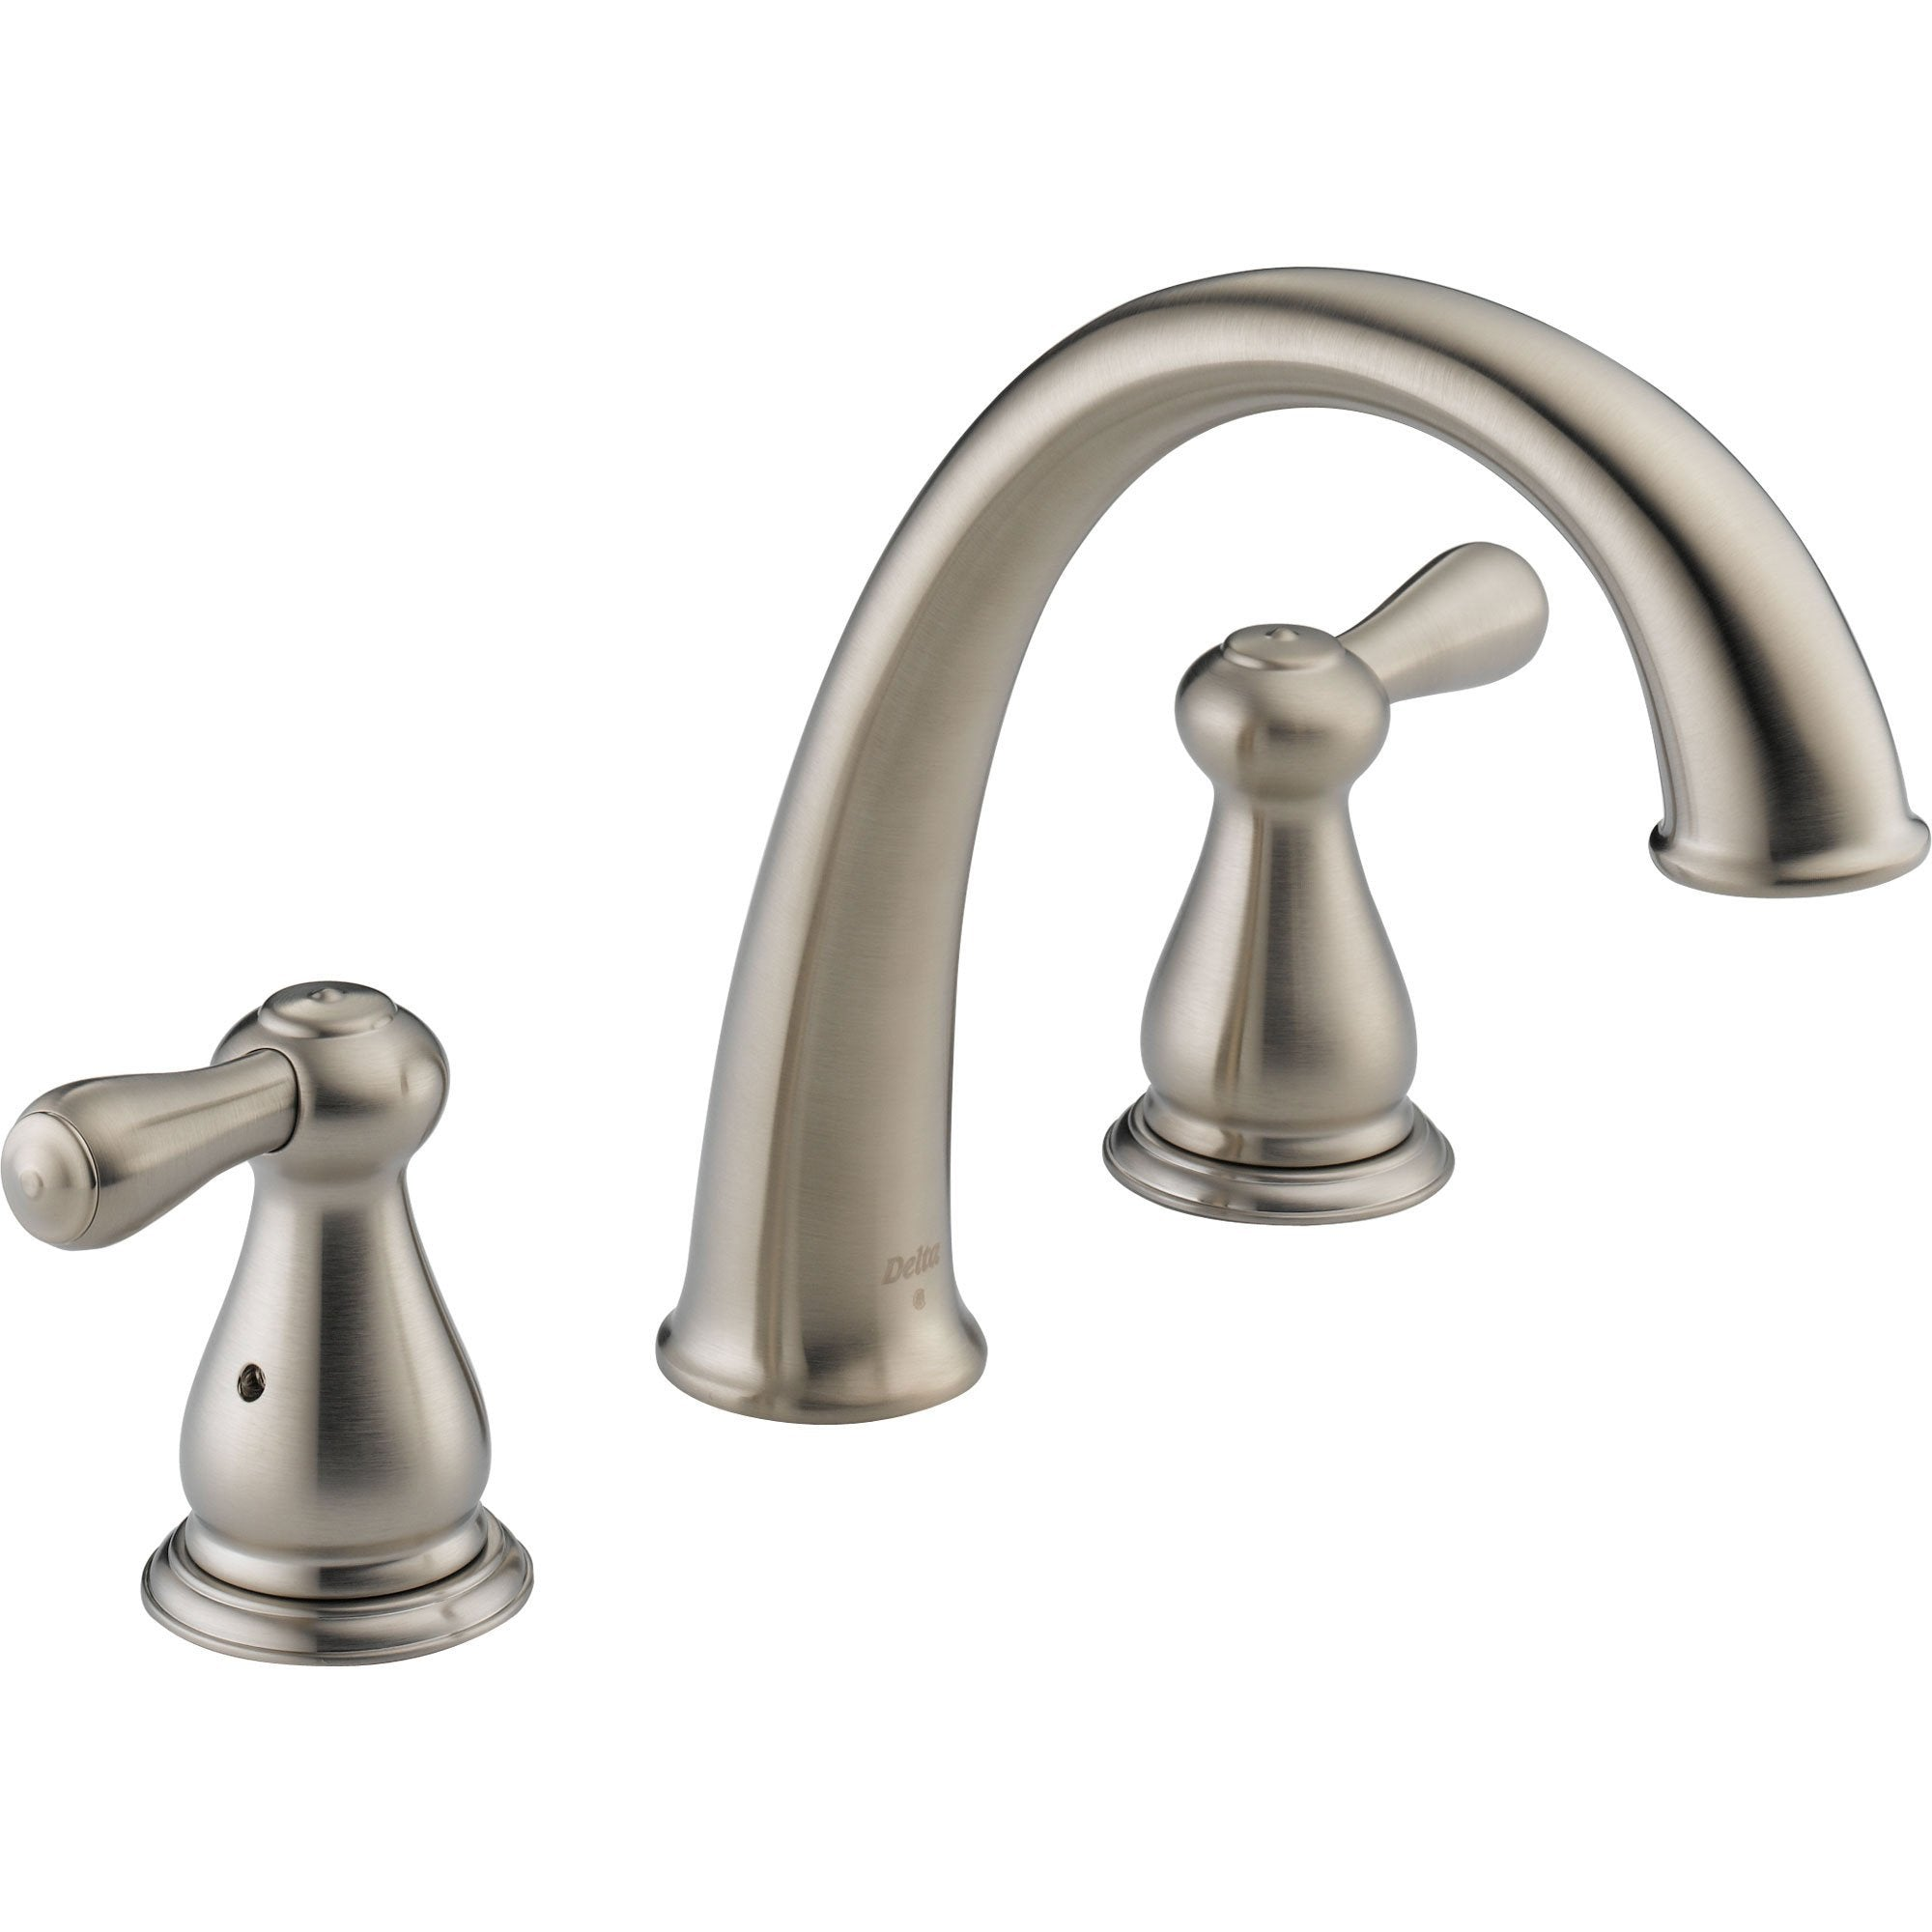 Delta Leland Widespread Stainless Steel Finish Roman Tub Faucet Trim Kit 467087